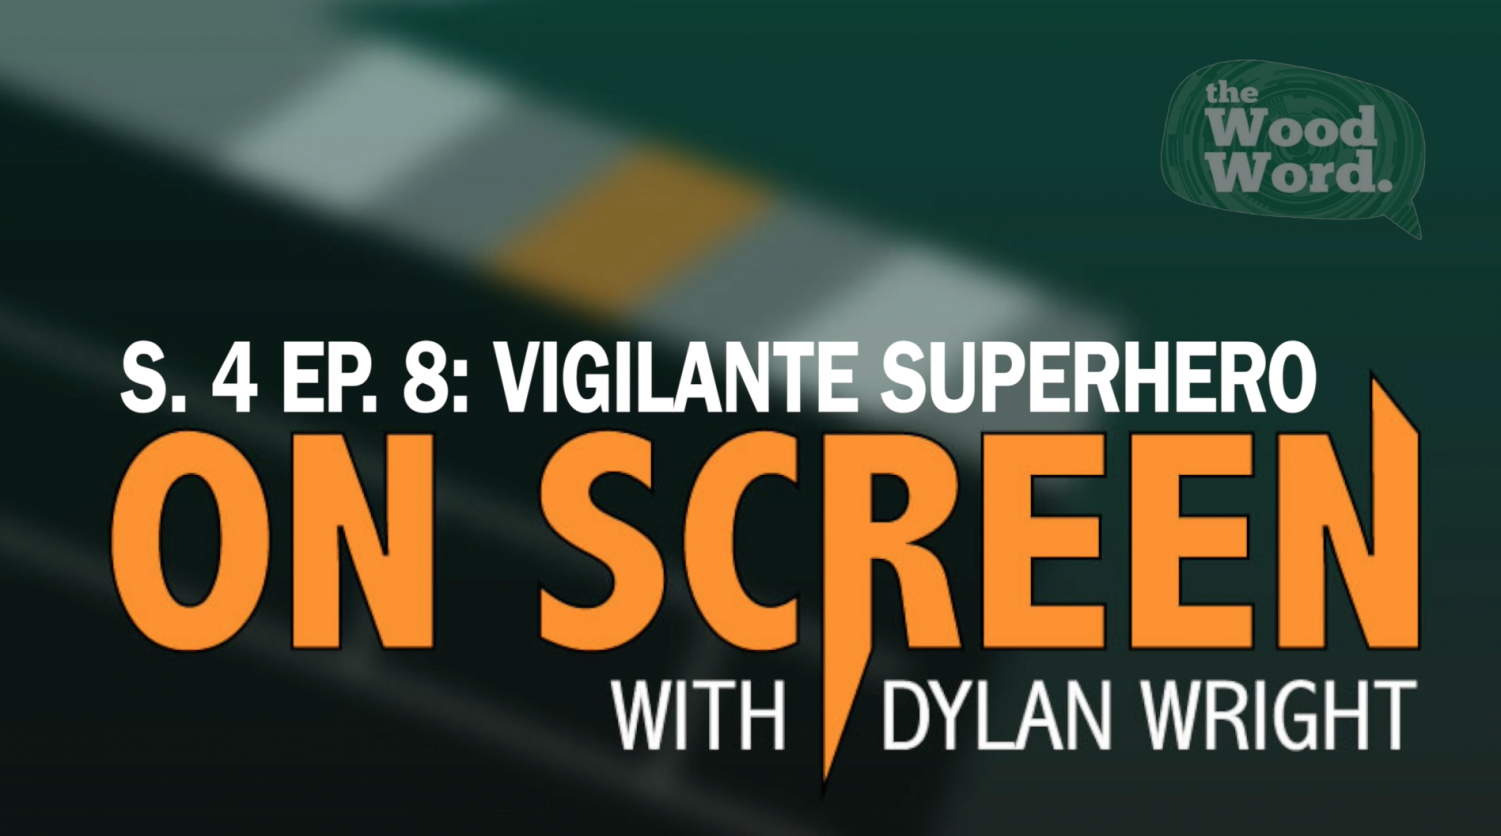 On Screen S. 4 Ep. 8: Vigilante Superhero